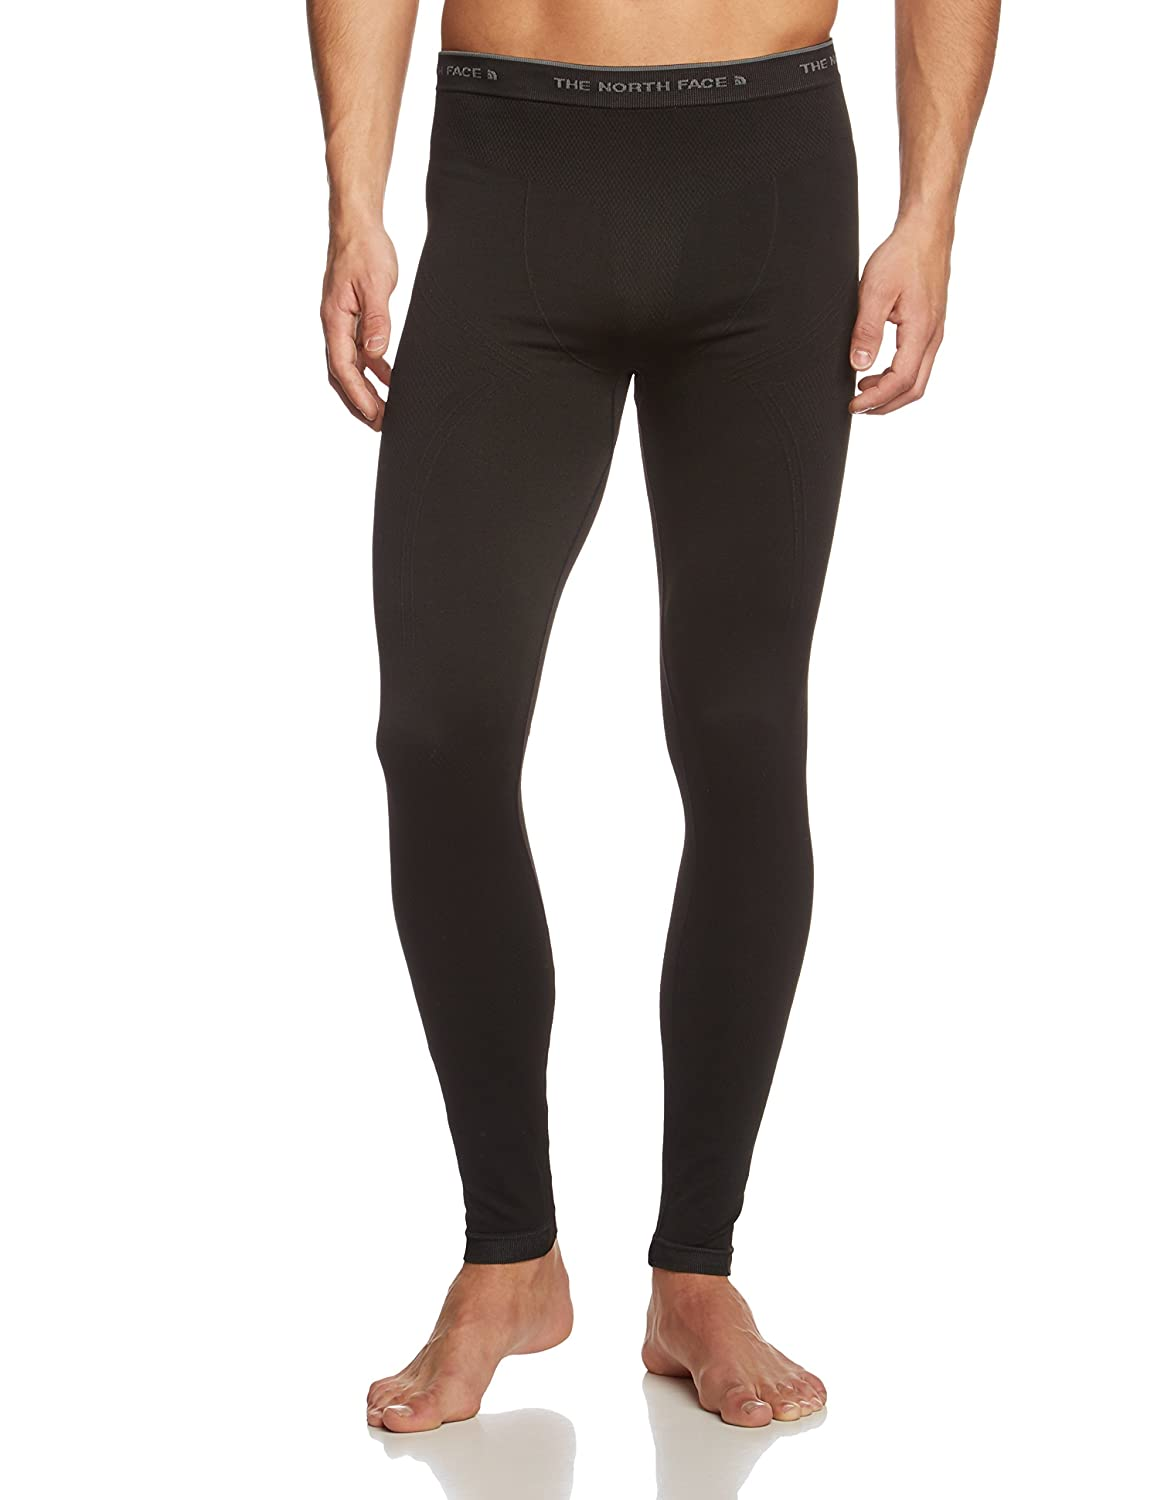 4566a9d77 The North Face Men's Hybrid Regular Tights